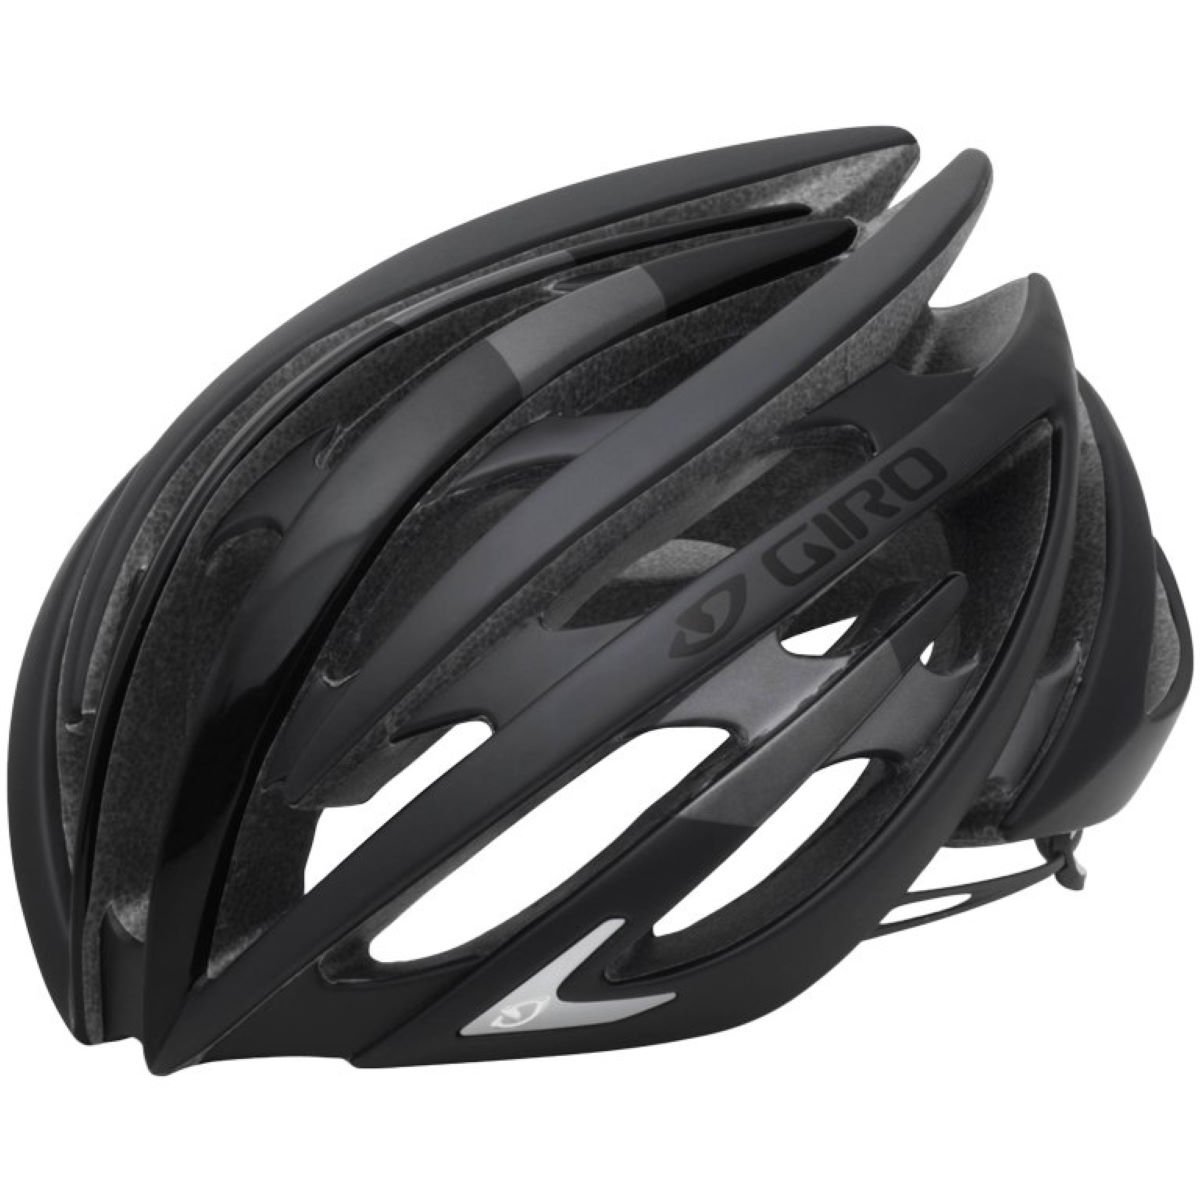 Image of Casque de route Giro Aeon - L Matte Black 20 | Casques